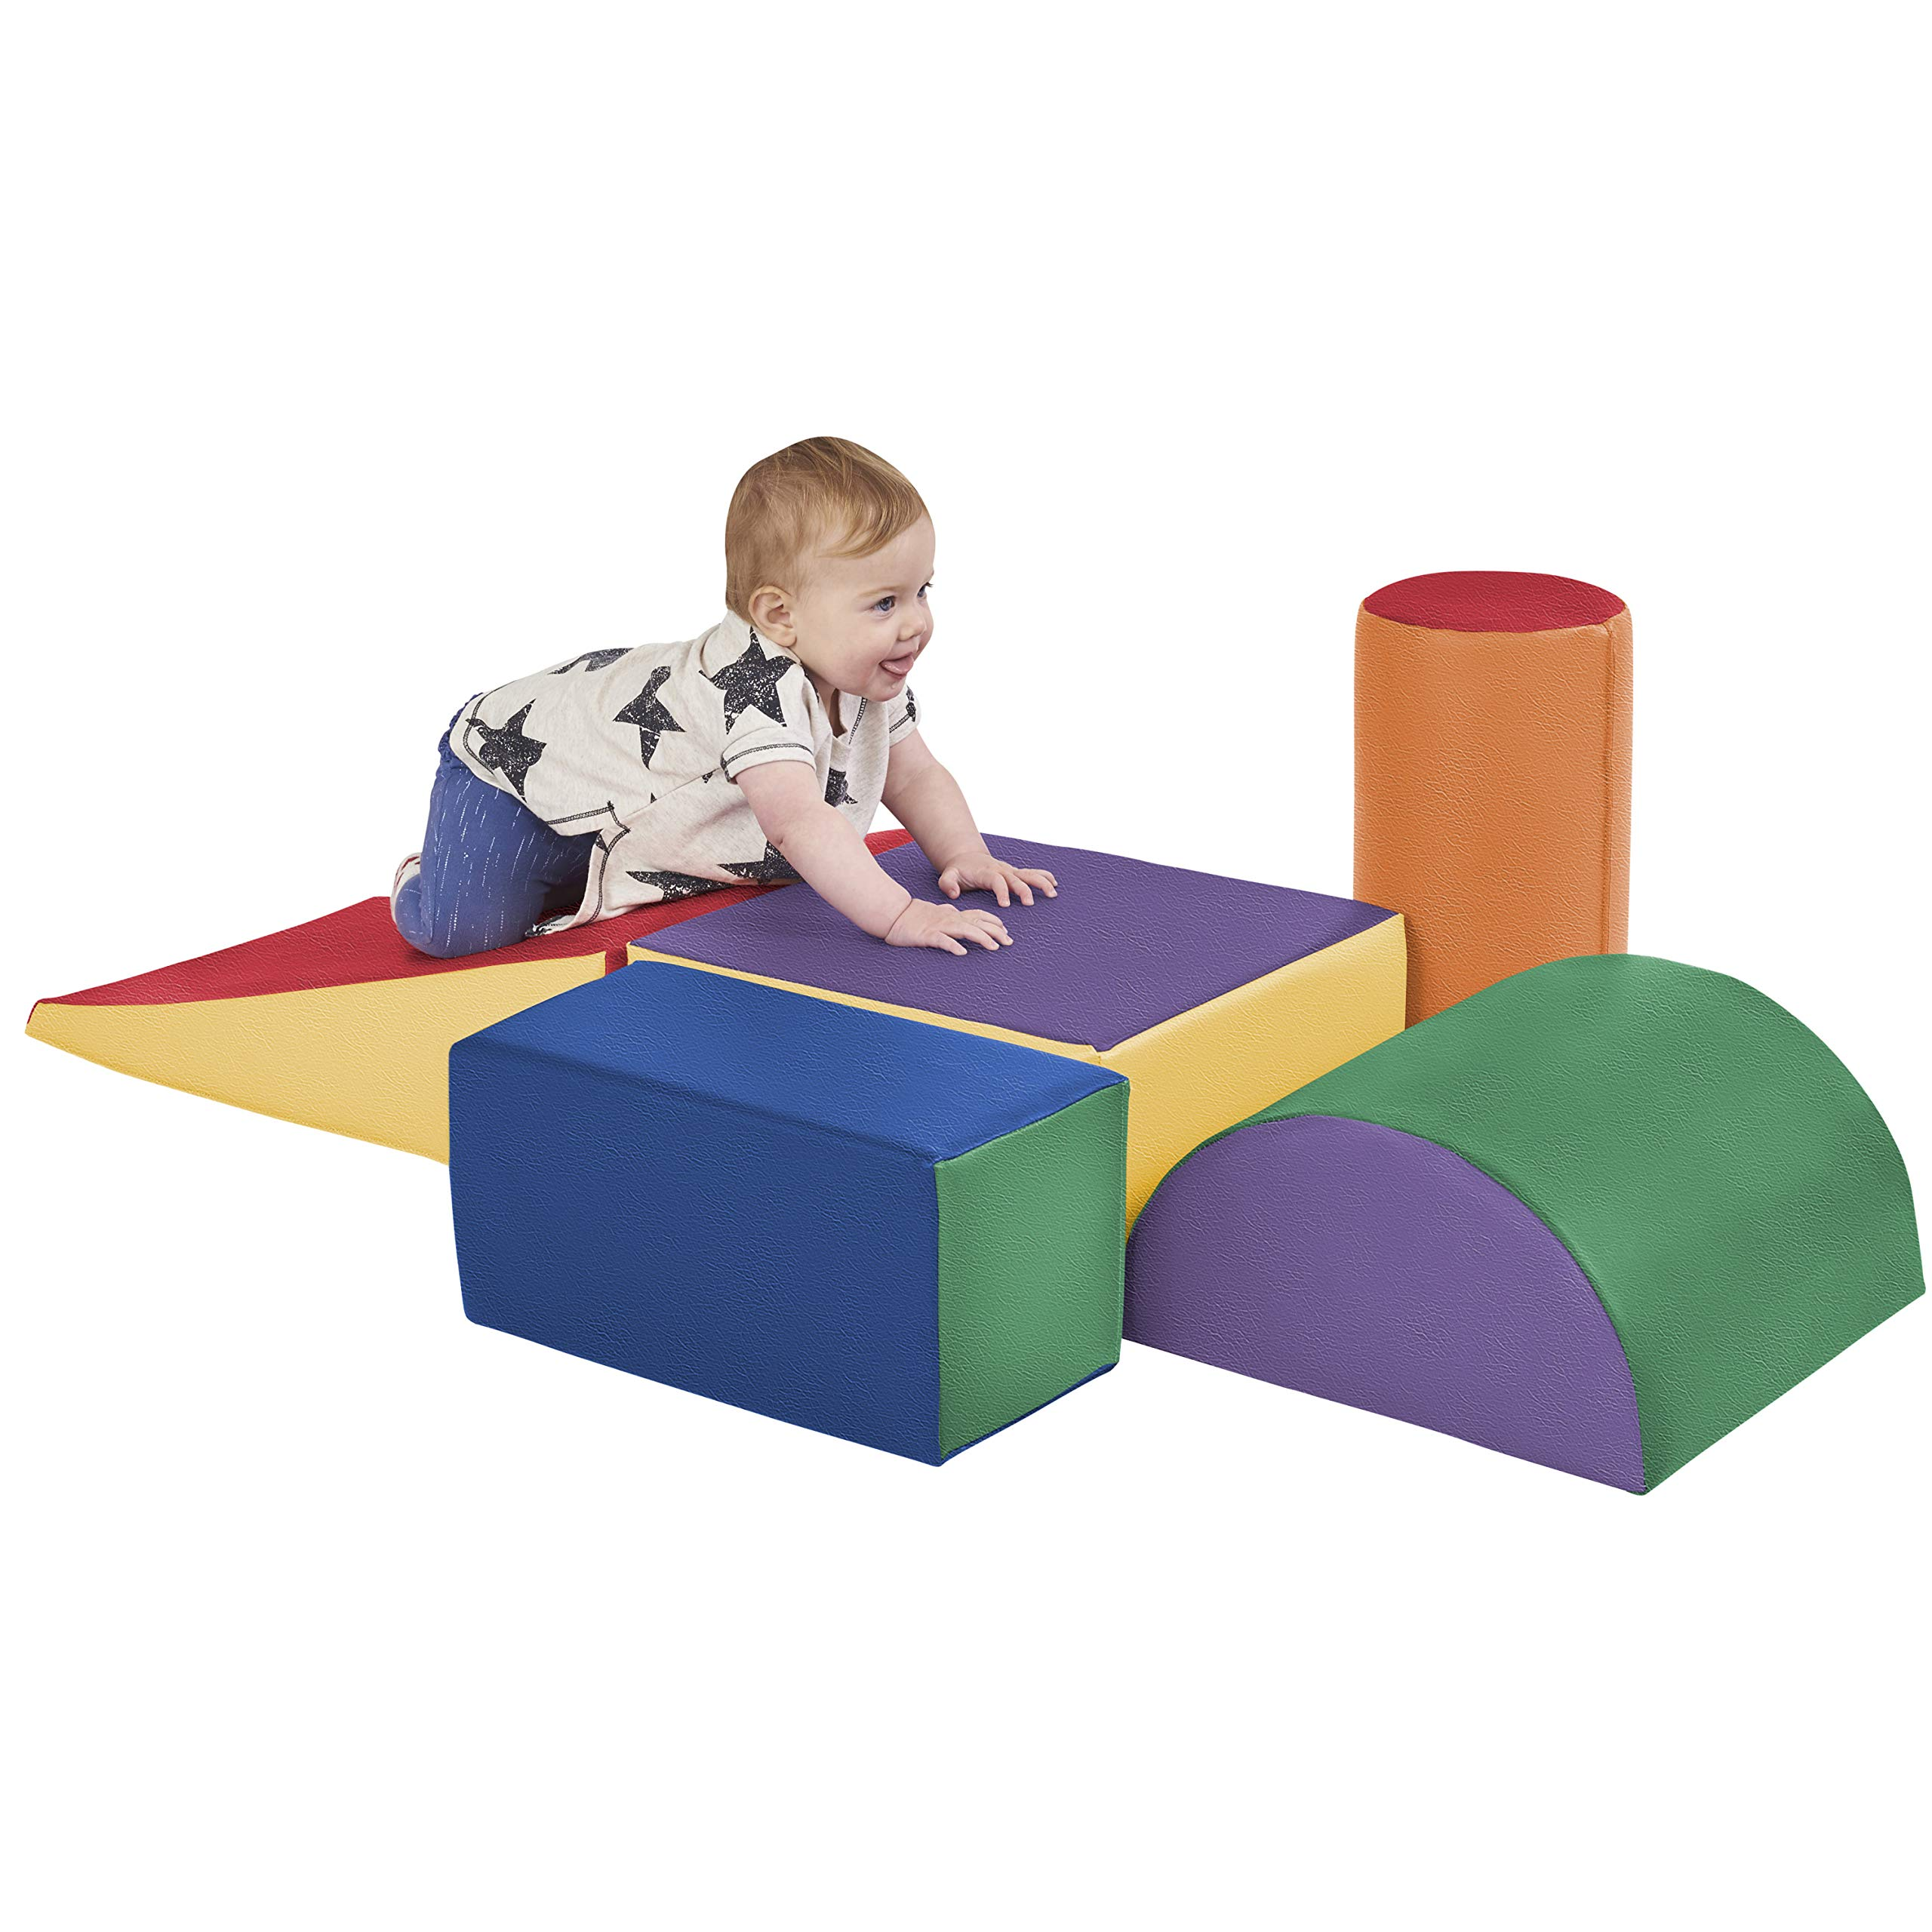 ECR4Kids SoftZone Climb and Crawl Activity Play Set, Lightweight Foam Shapes for Climbing, Crawling and Sliding, Safe Foam Playset for Toddlers and Preschoolers, 5-Piece Set, Primary